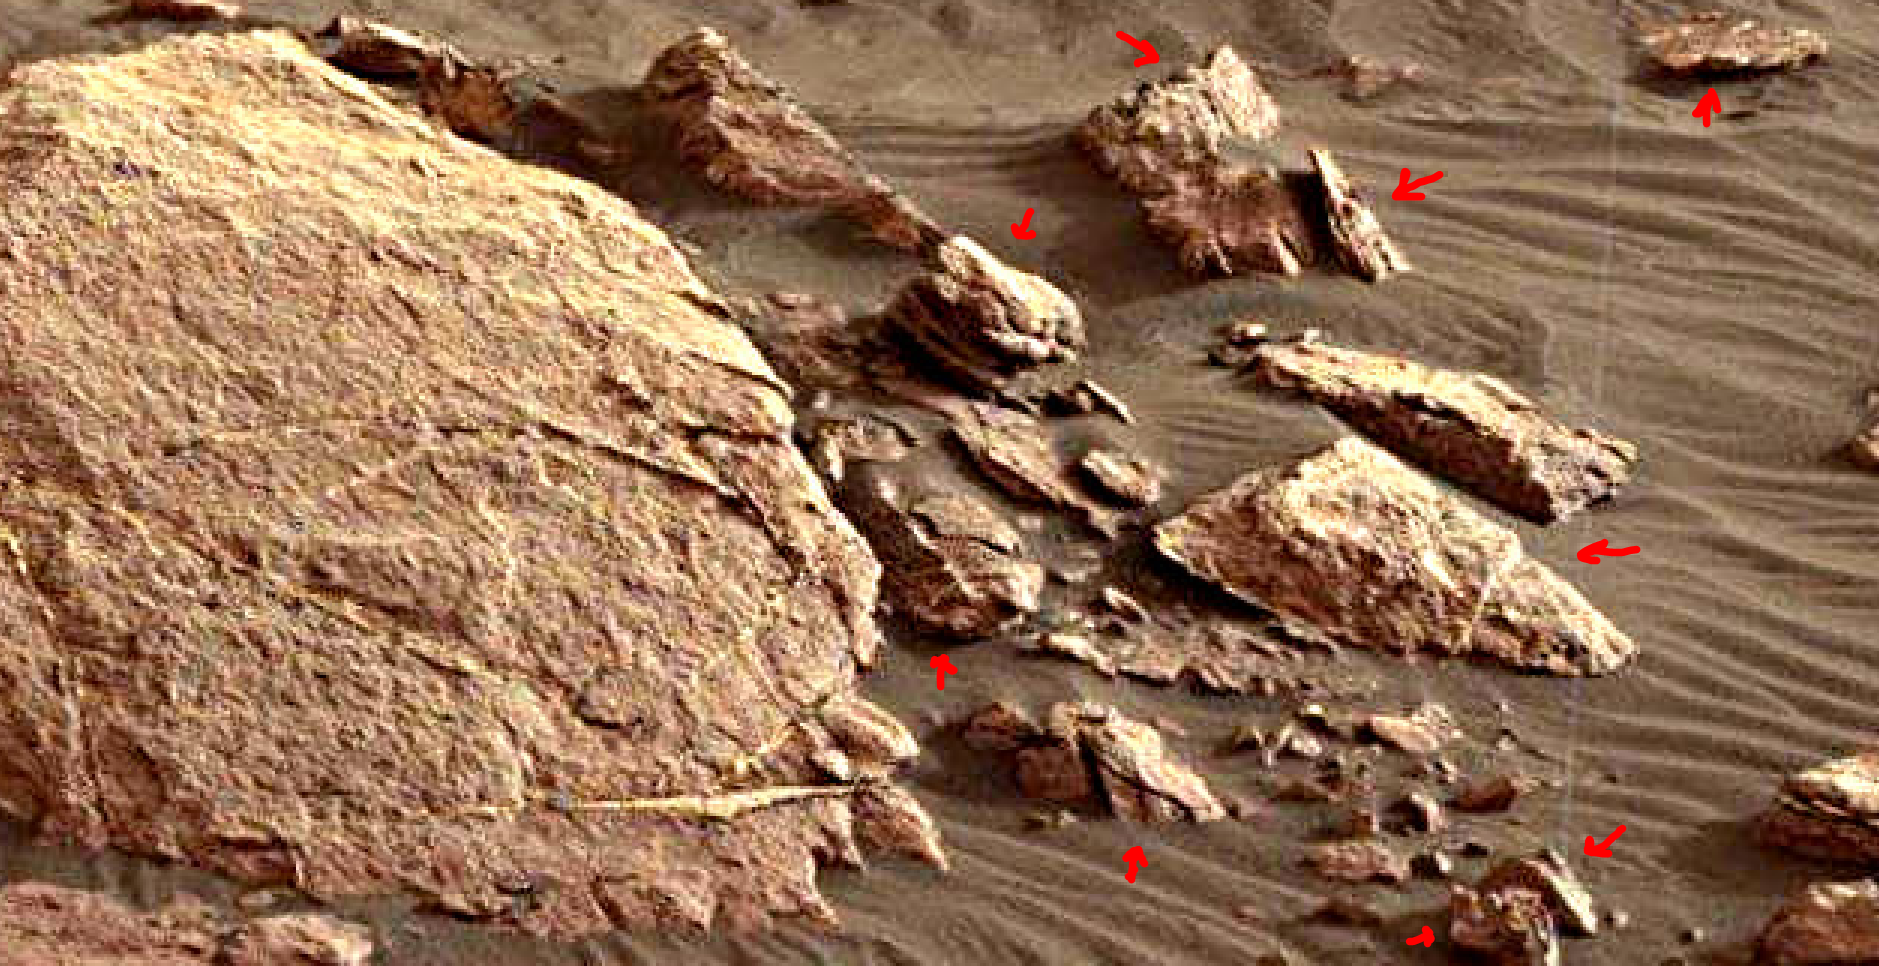 mars-sol-1512-anomaly-artifacts-12-was-life-on-mars